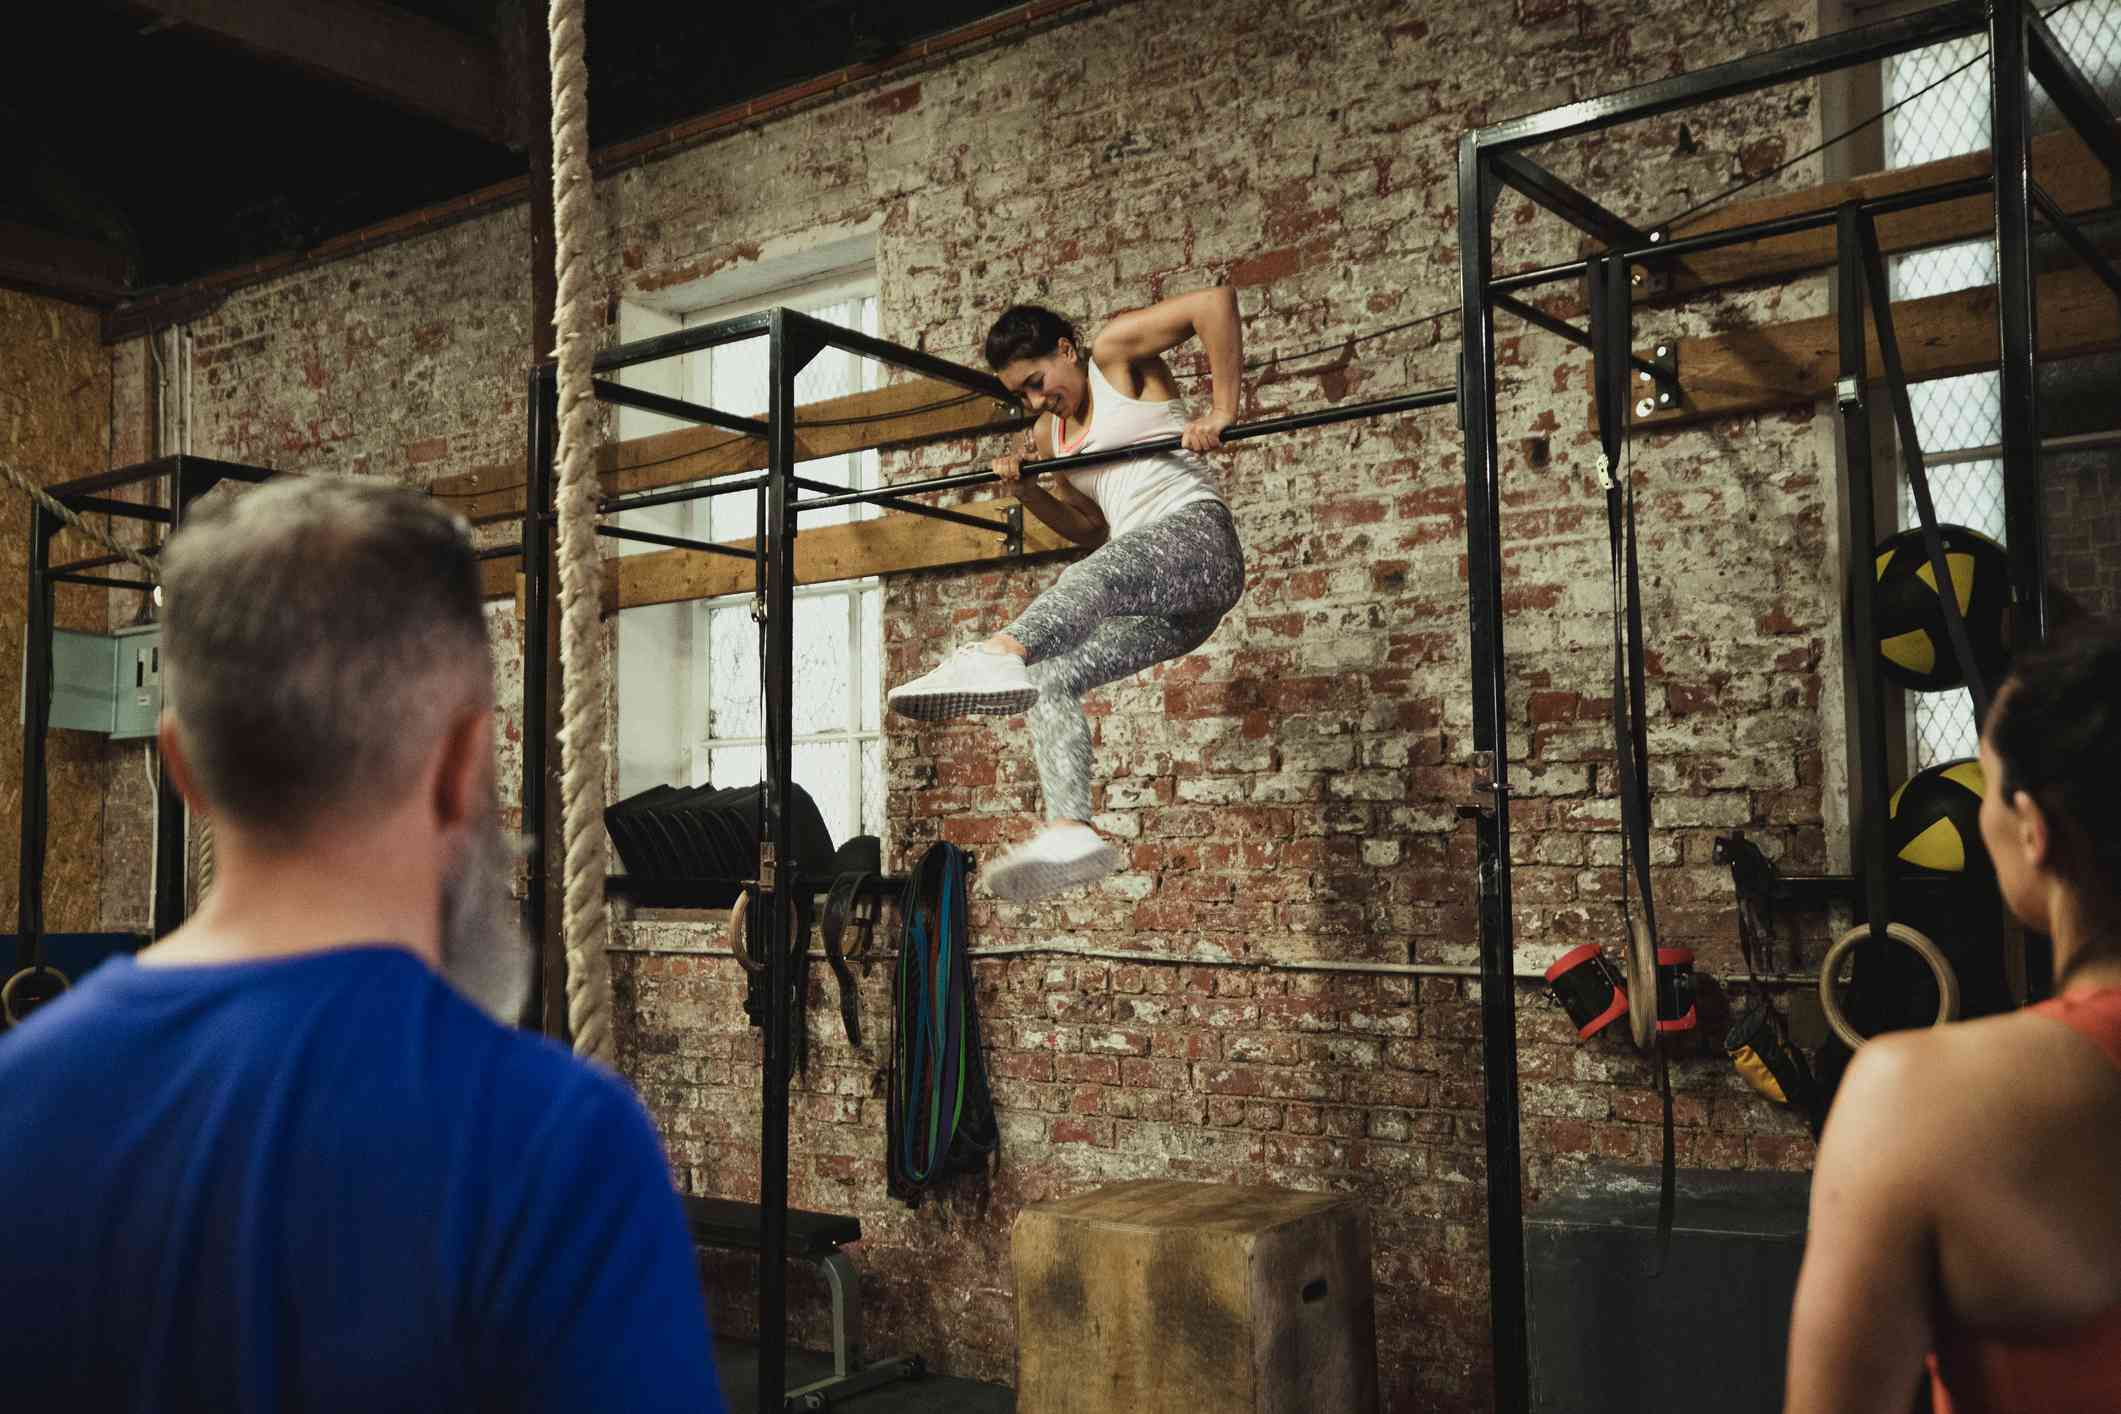 A woman performs a bar muscle-up in a CrossFit gym